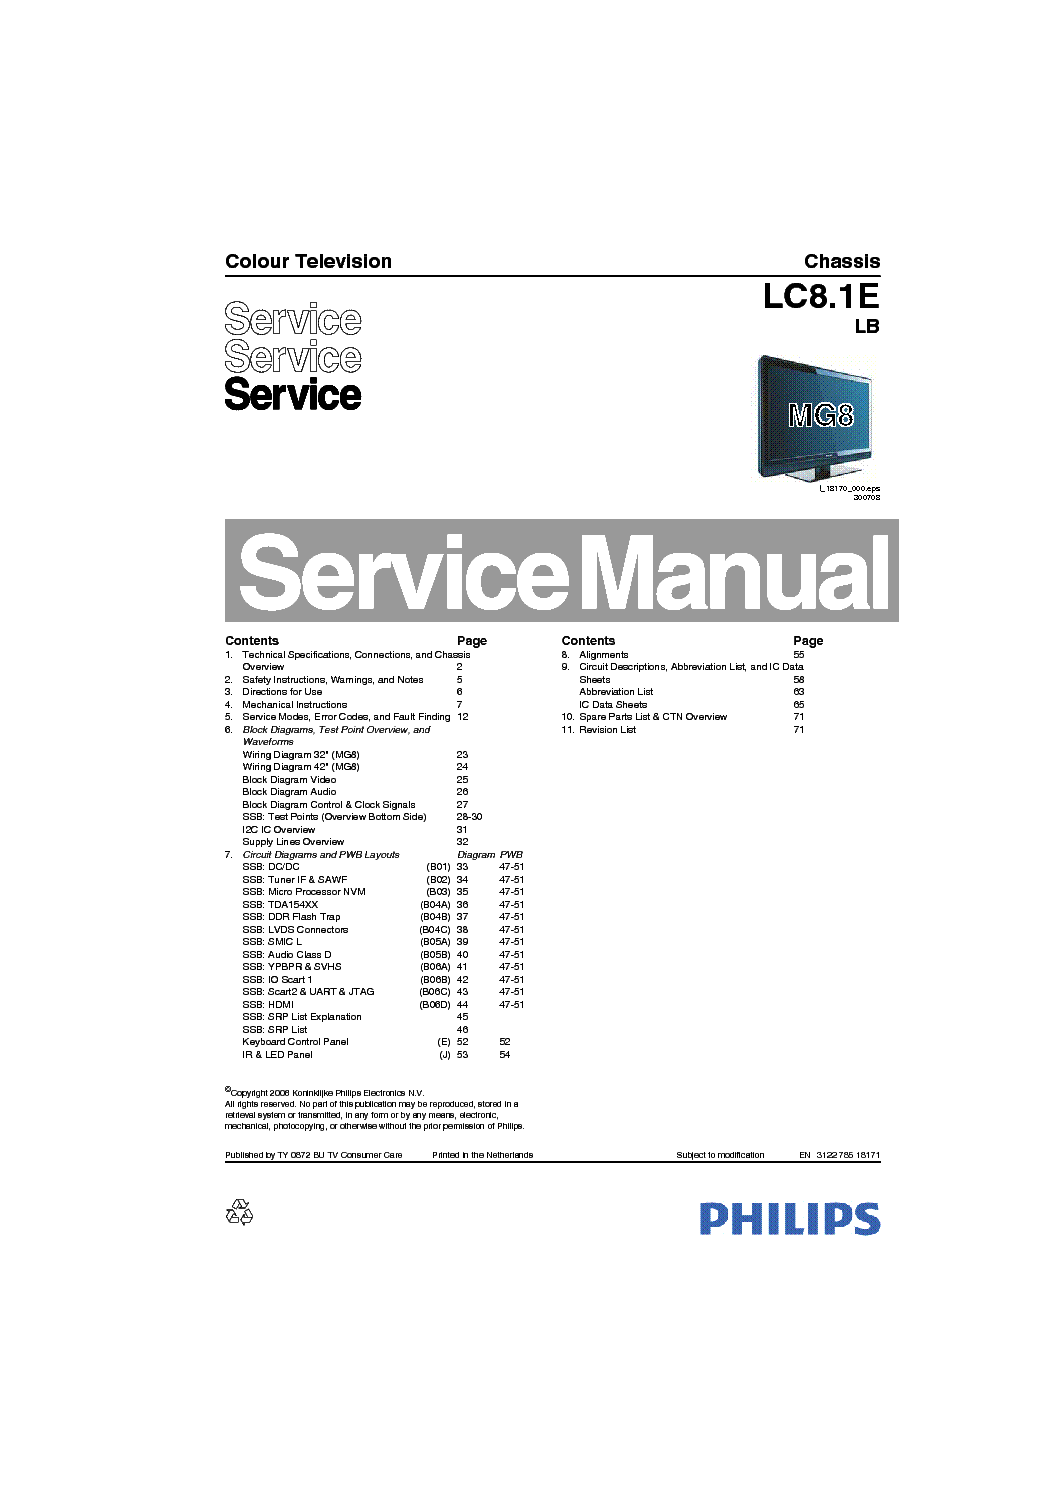 PHILIPS CHASSIS LC8.1E LB service manual (1st page)